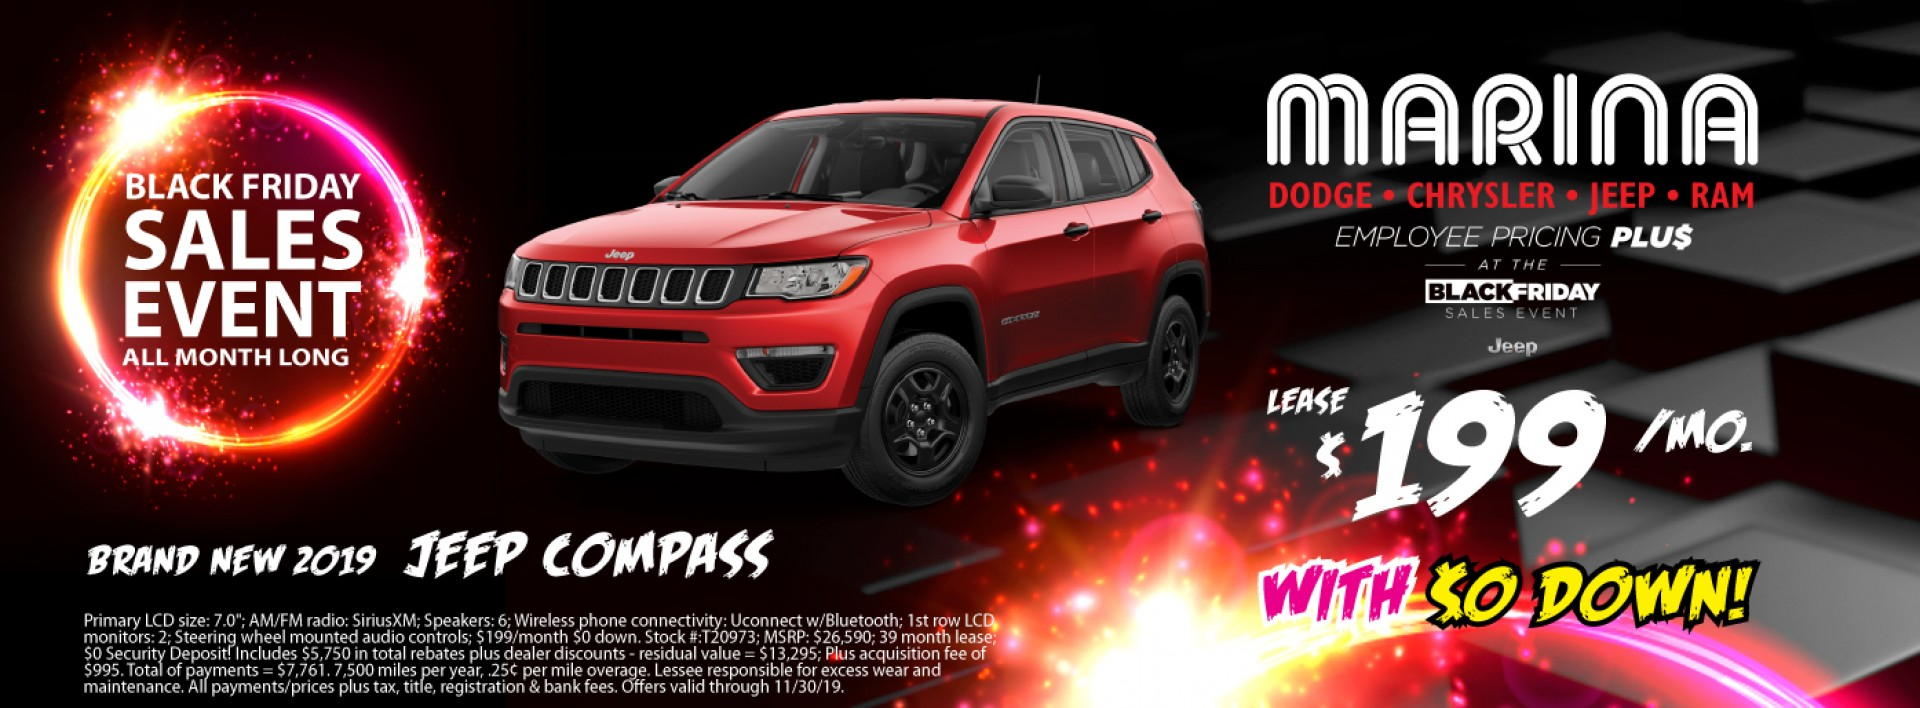 Brand new 2019 Jeep Compass lease $199/mo with $0 down!